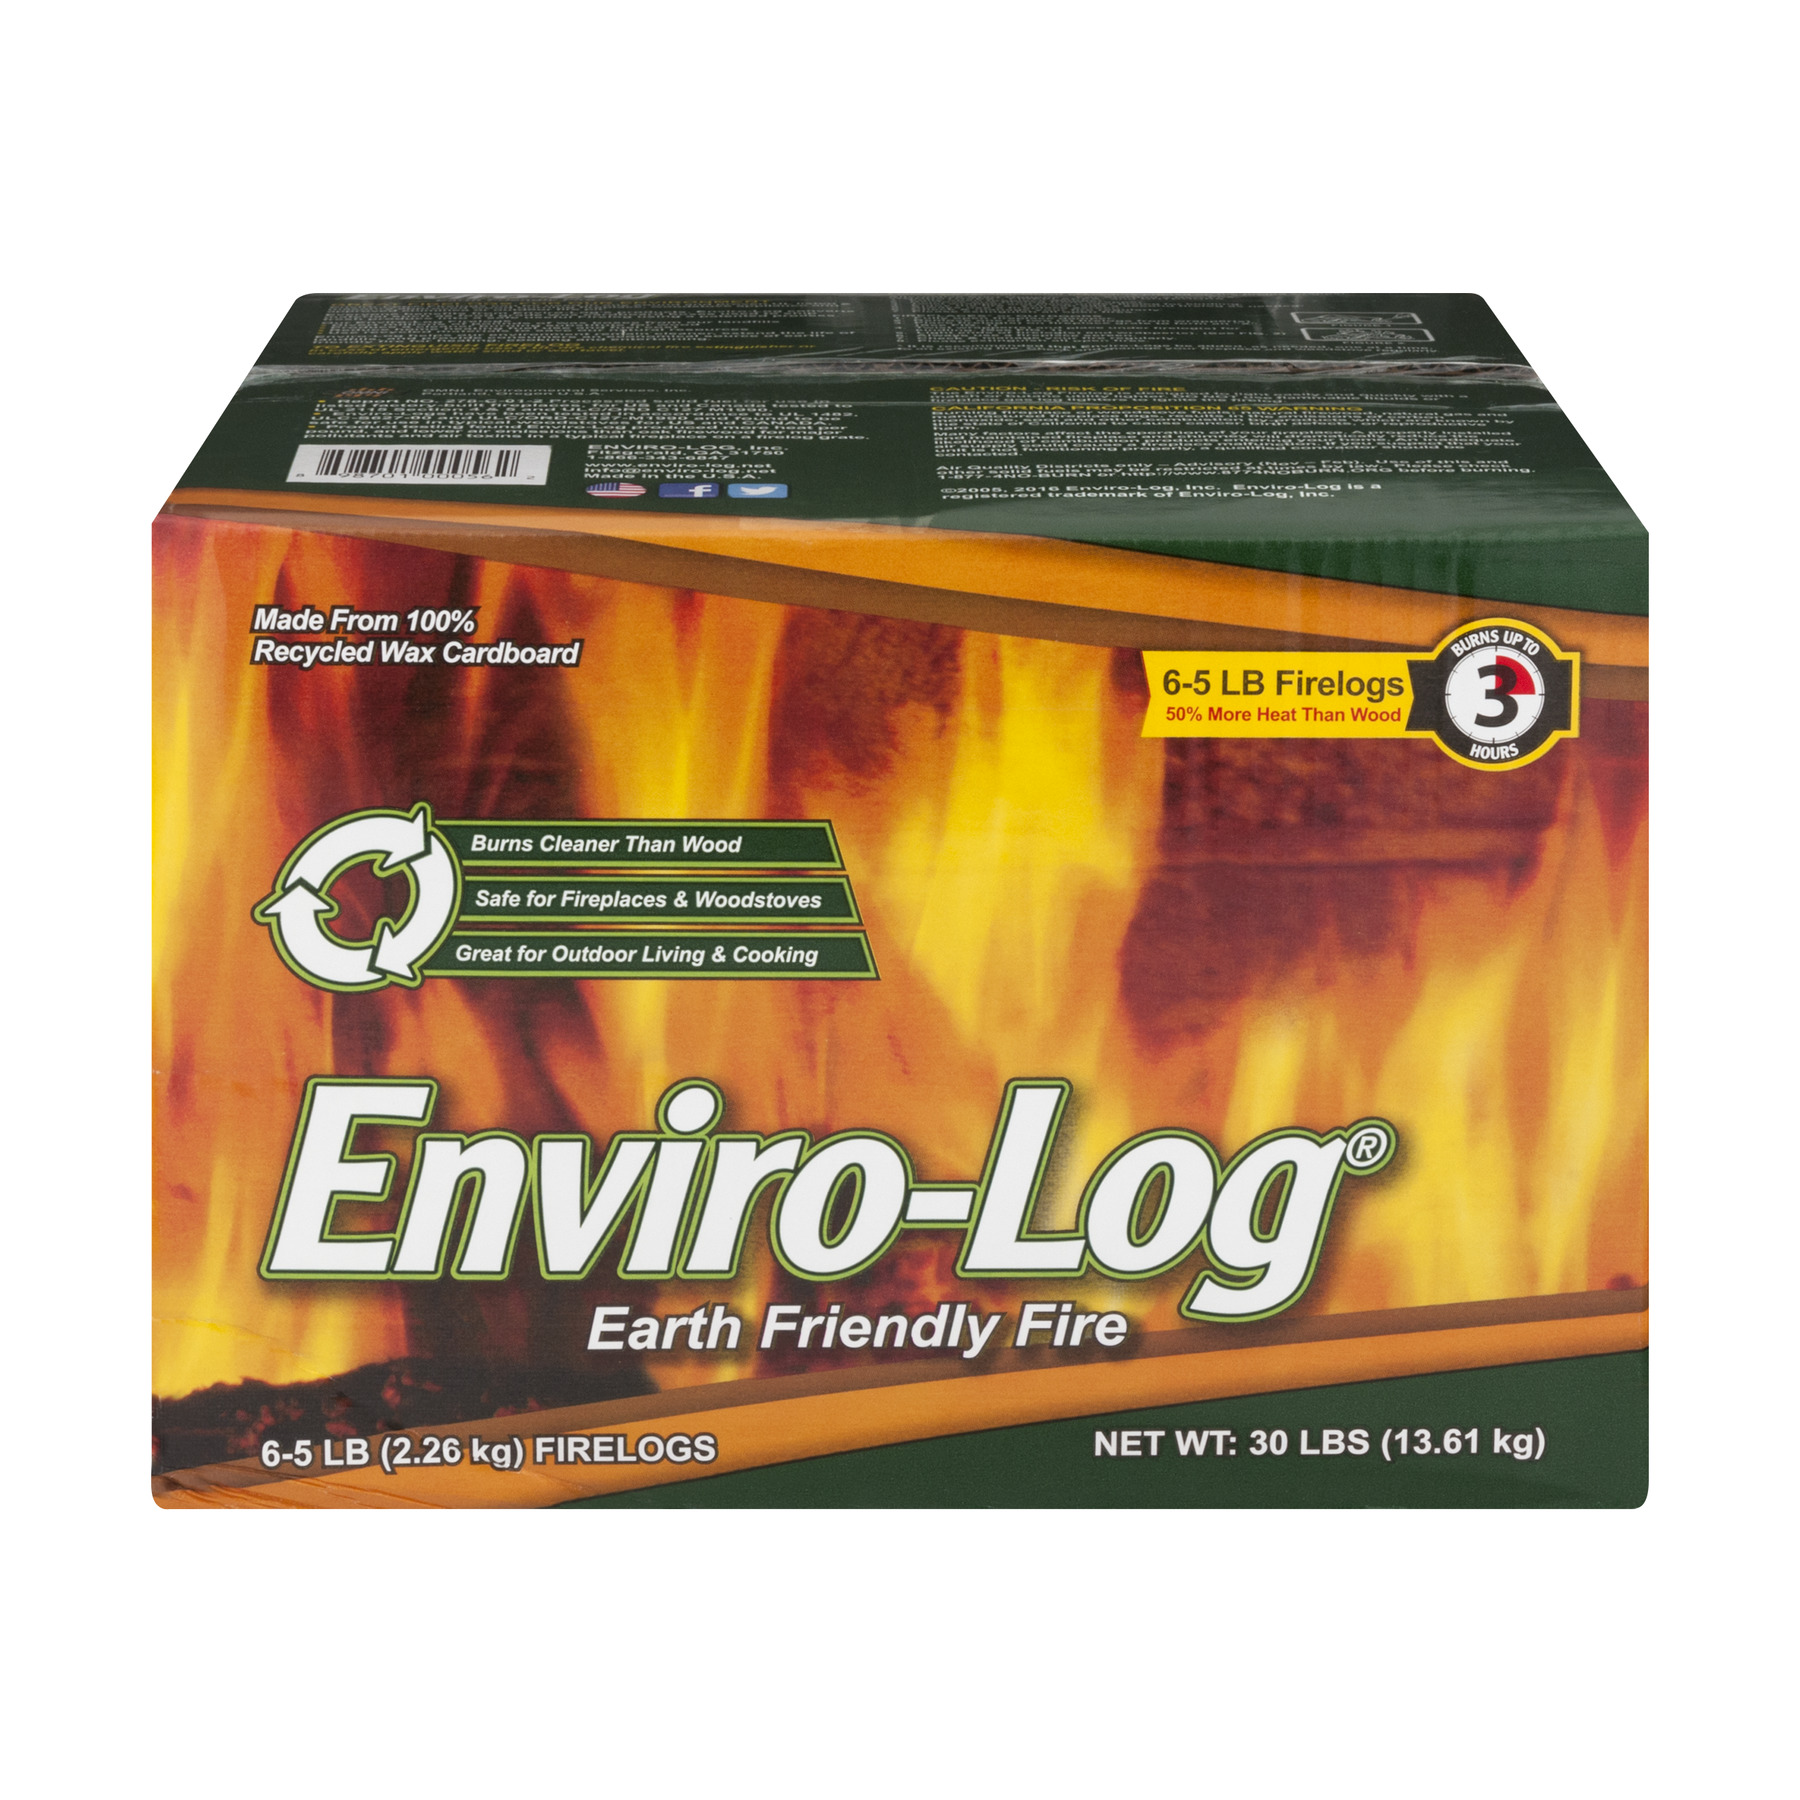 Enviro-Log Earth Friendly Firelogs - 6 CT5.0 LB